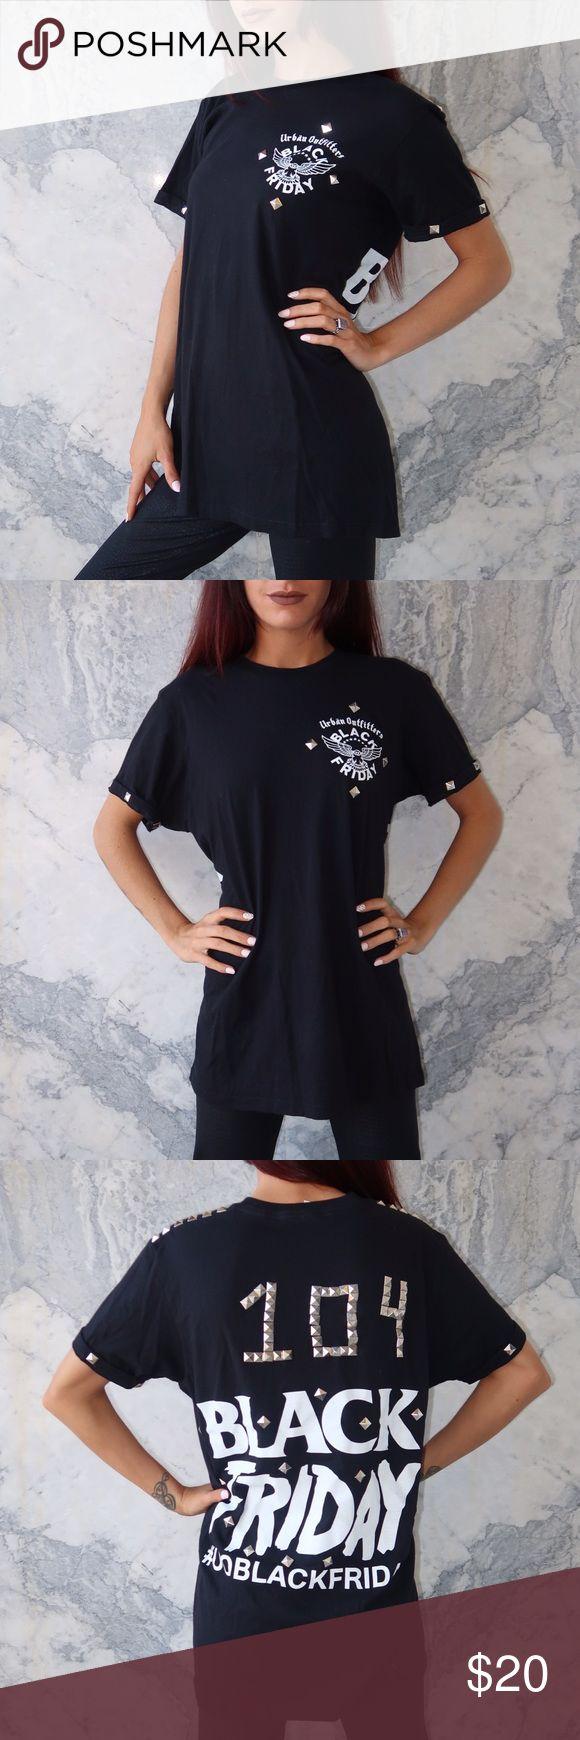 Urban Outfitters Black Friday Studded T Shirt PRE LOVED Urban Outfitters unisex Black Friday large t shirt with pyramid stud details. In good condition. Shows some signs of wear some of the studs are coming loose. Urban Outfitters Tops Tees - Short Sleeve